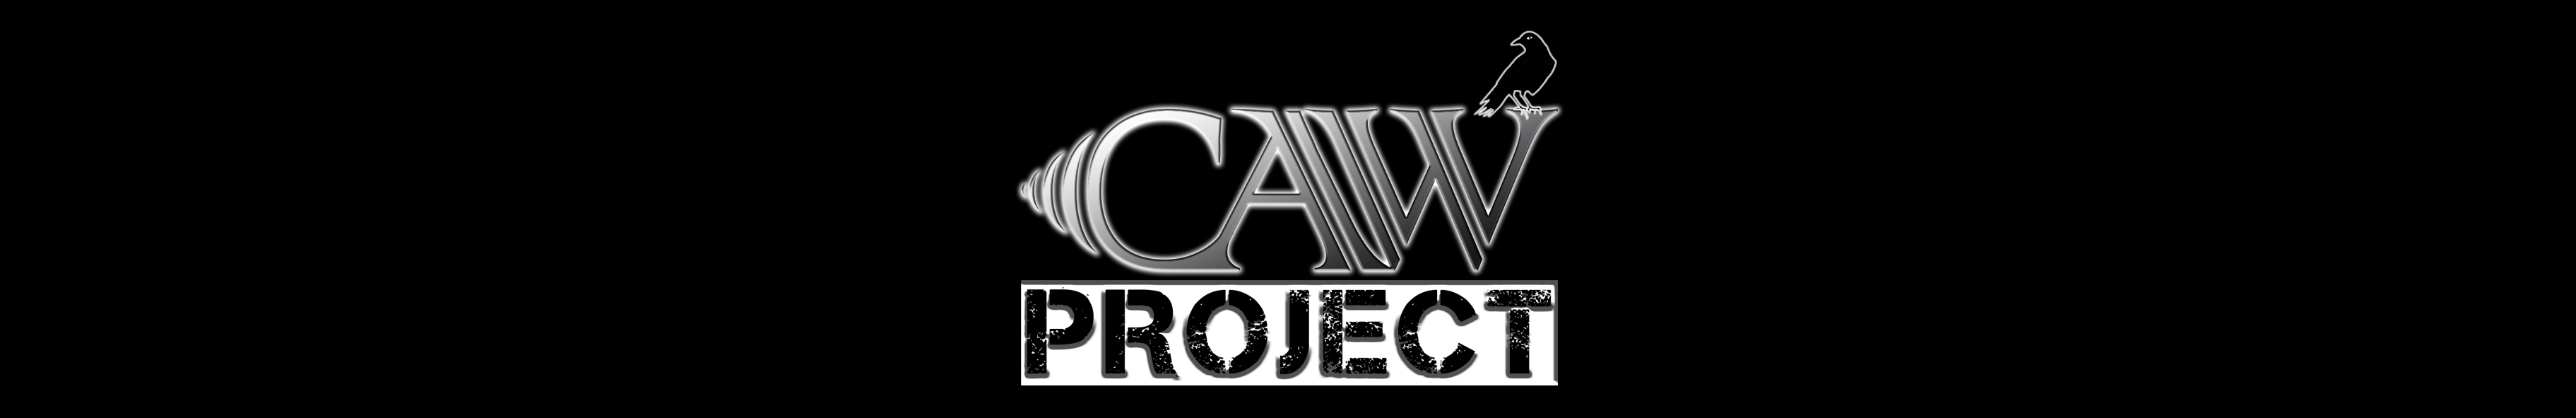 CAW-Project